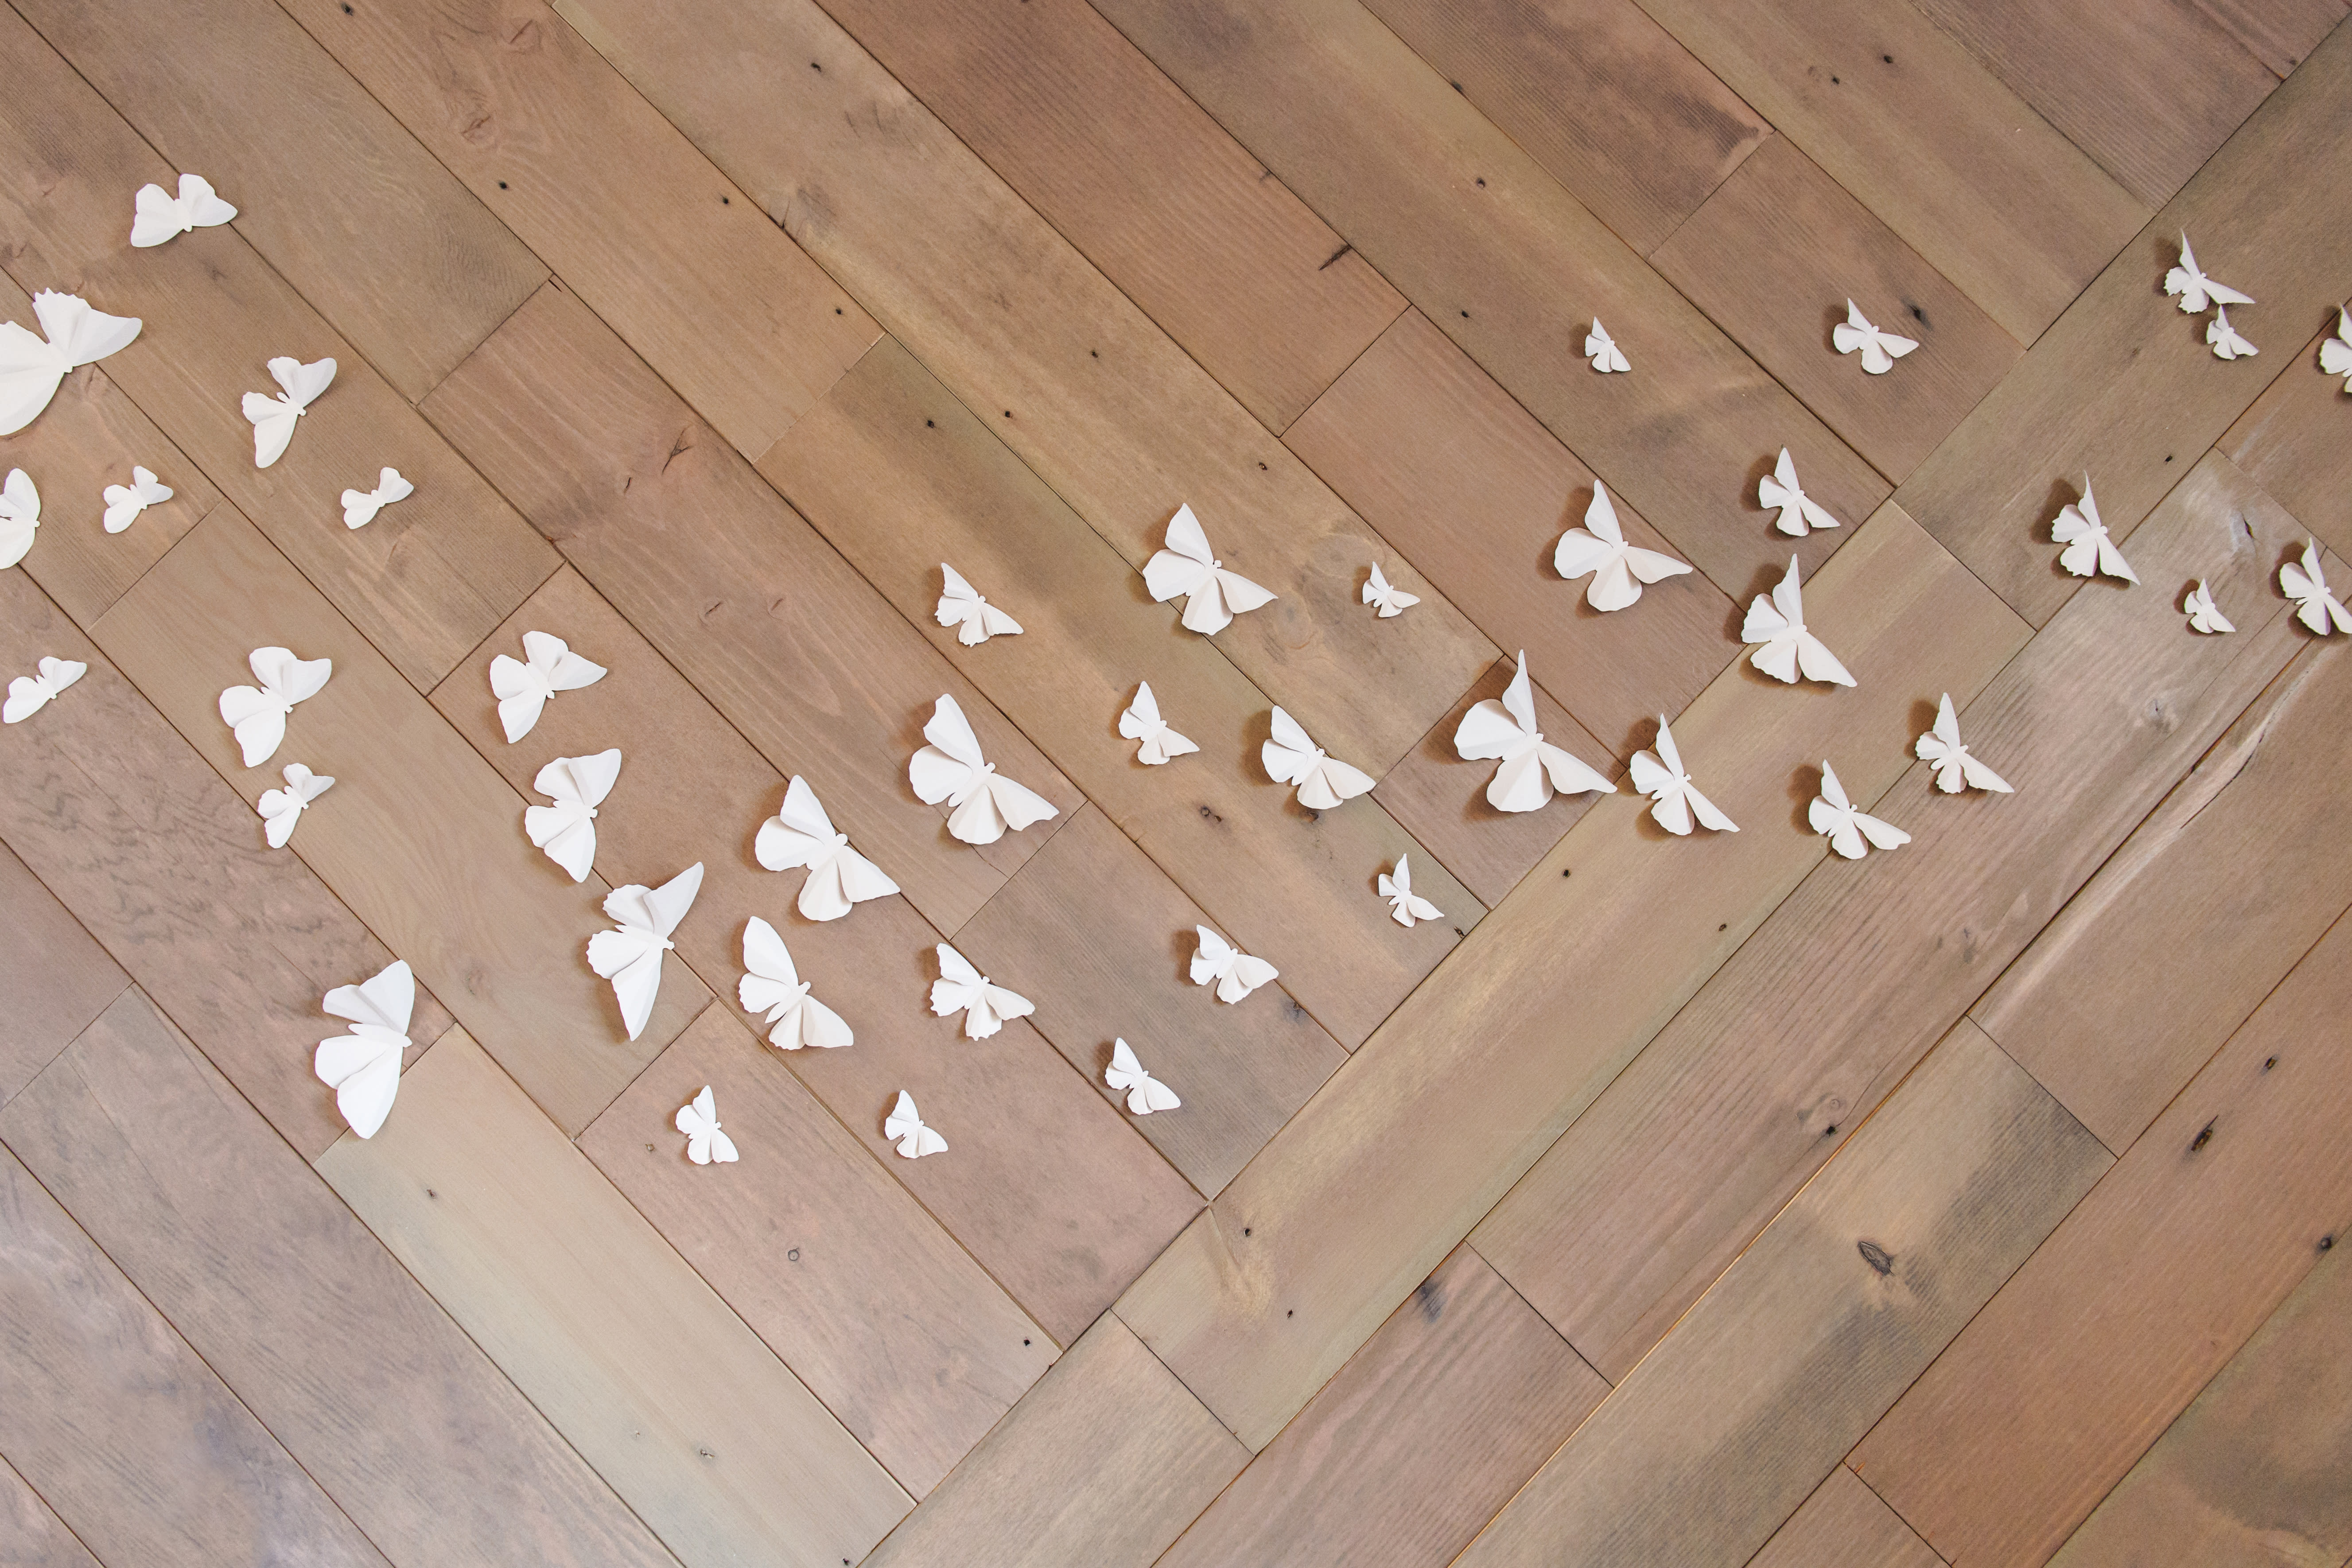 Stikwood peel and stick rustic slate planks set in an angled pattern on a wall in a girls bedroom with 3d white butterflies.